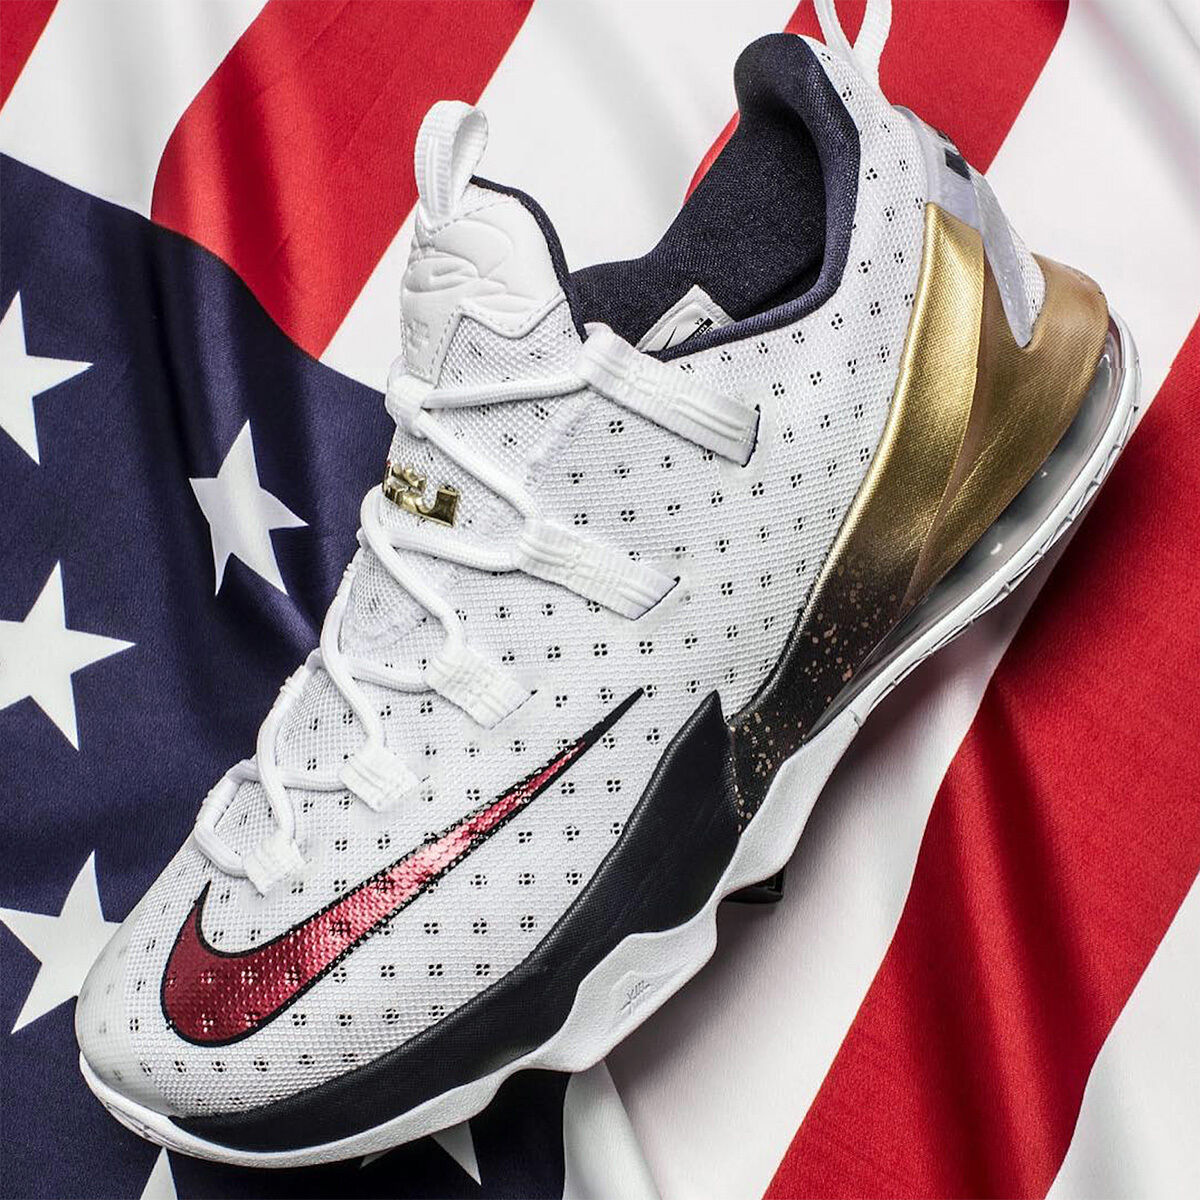 Nike LeBron 13 XIII Low USA 831925-164 Gold Medal Size 12. 831925-164 USA Kyrie Cavs MVP d93c13